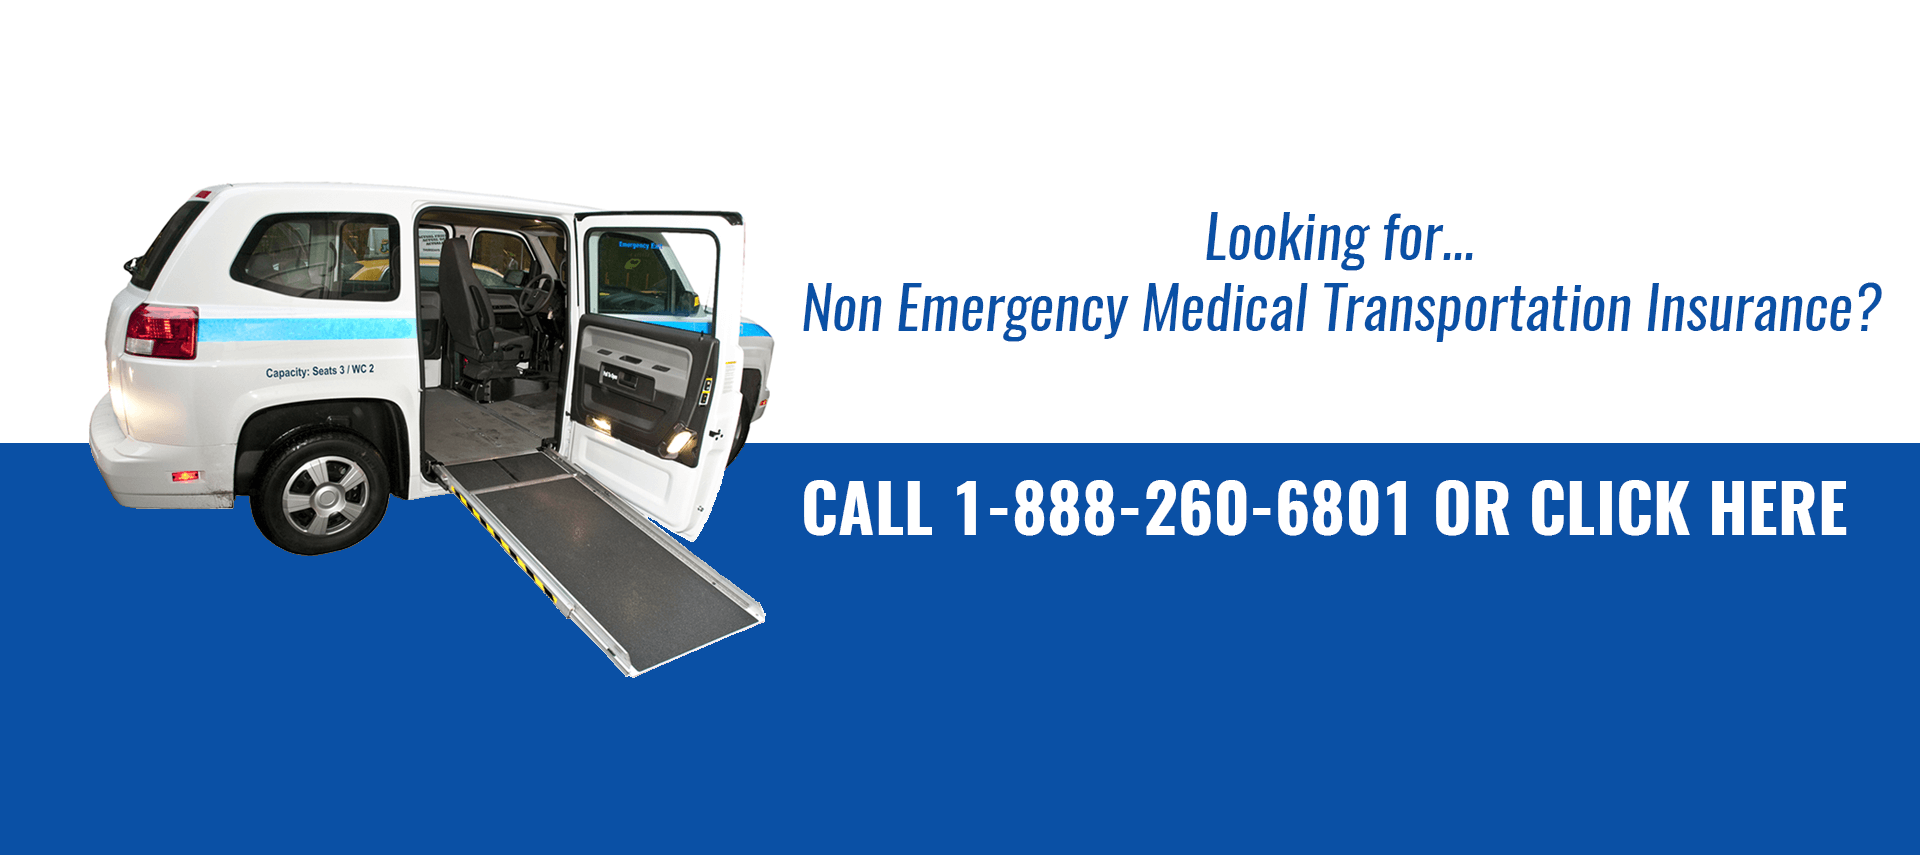 Looking For Non Emergency Medical Transportation Insurance?